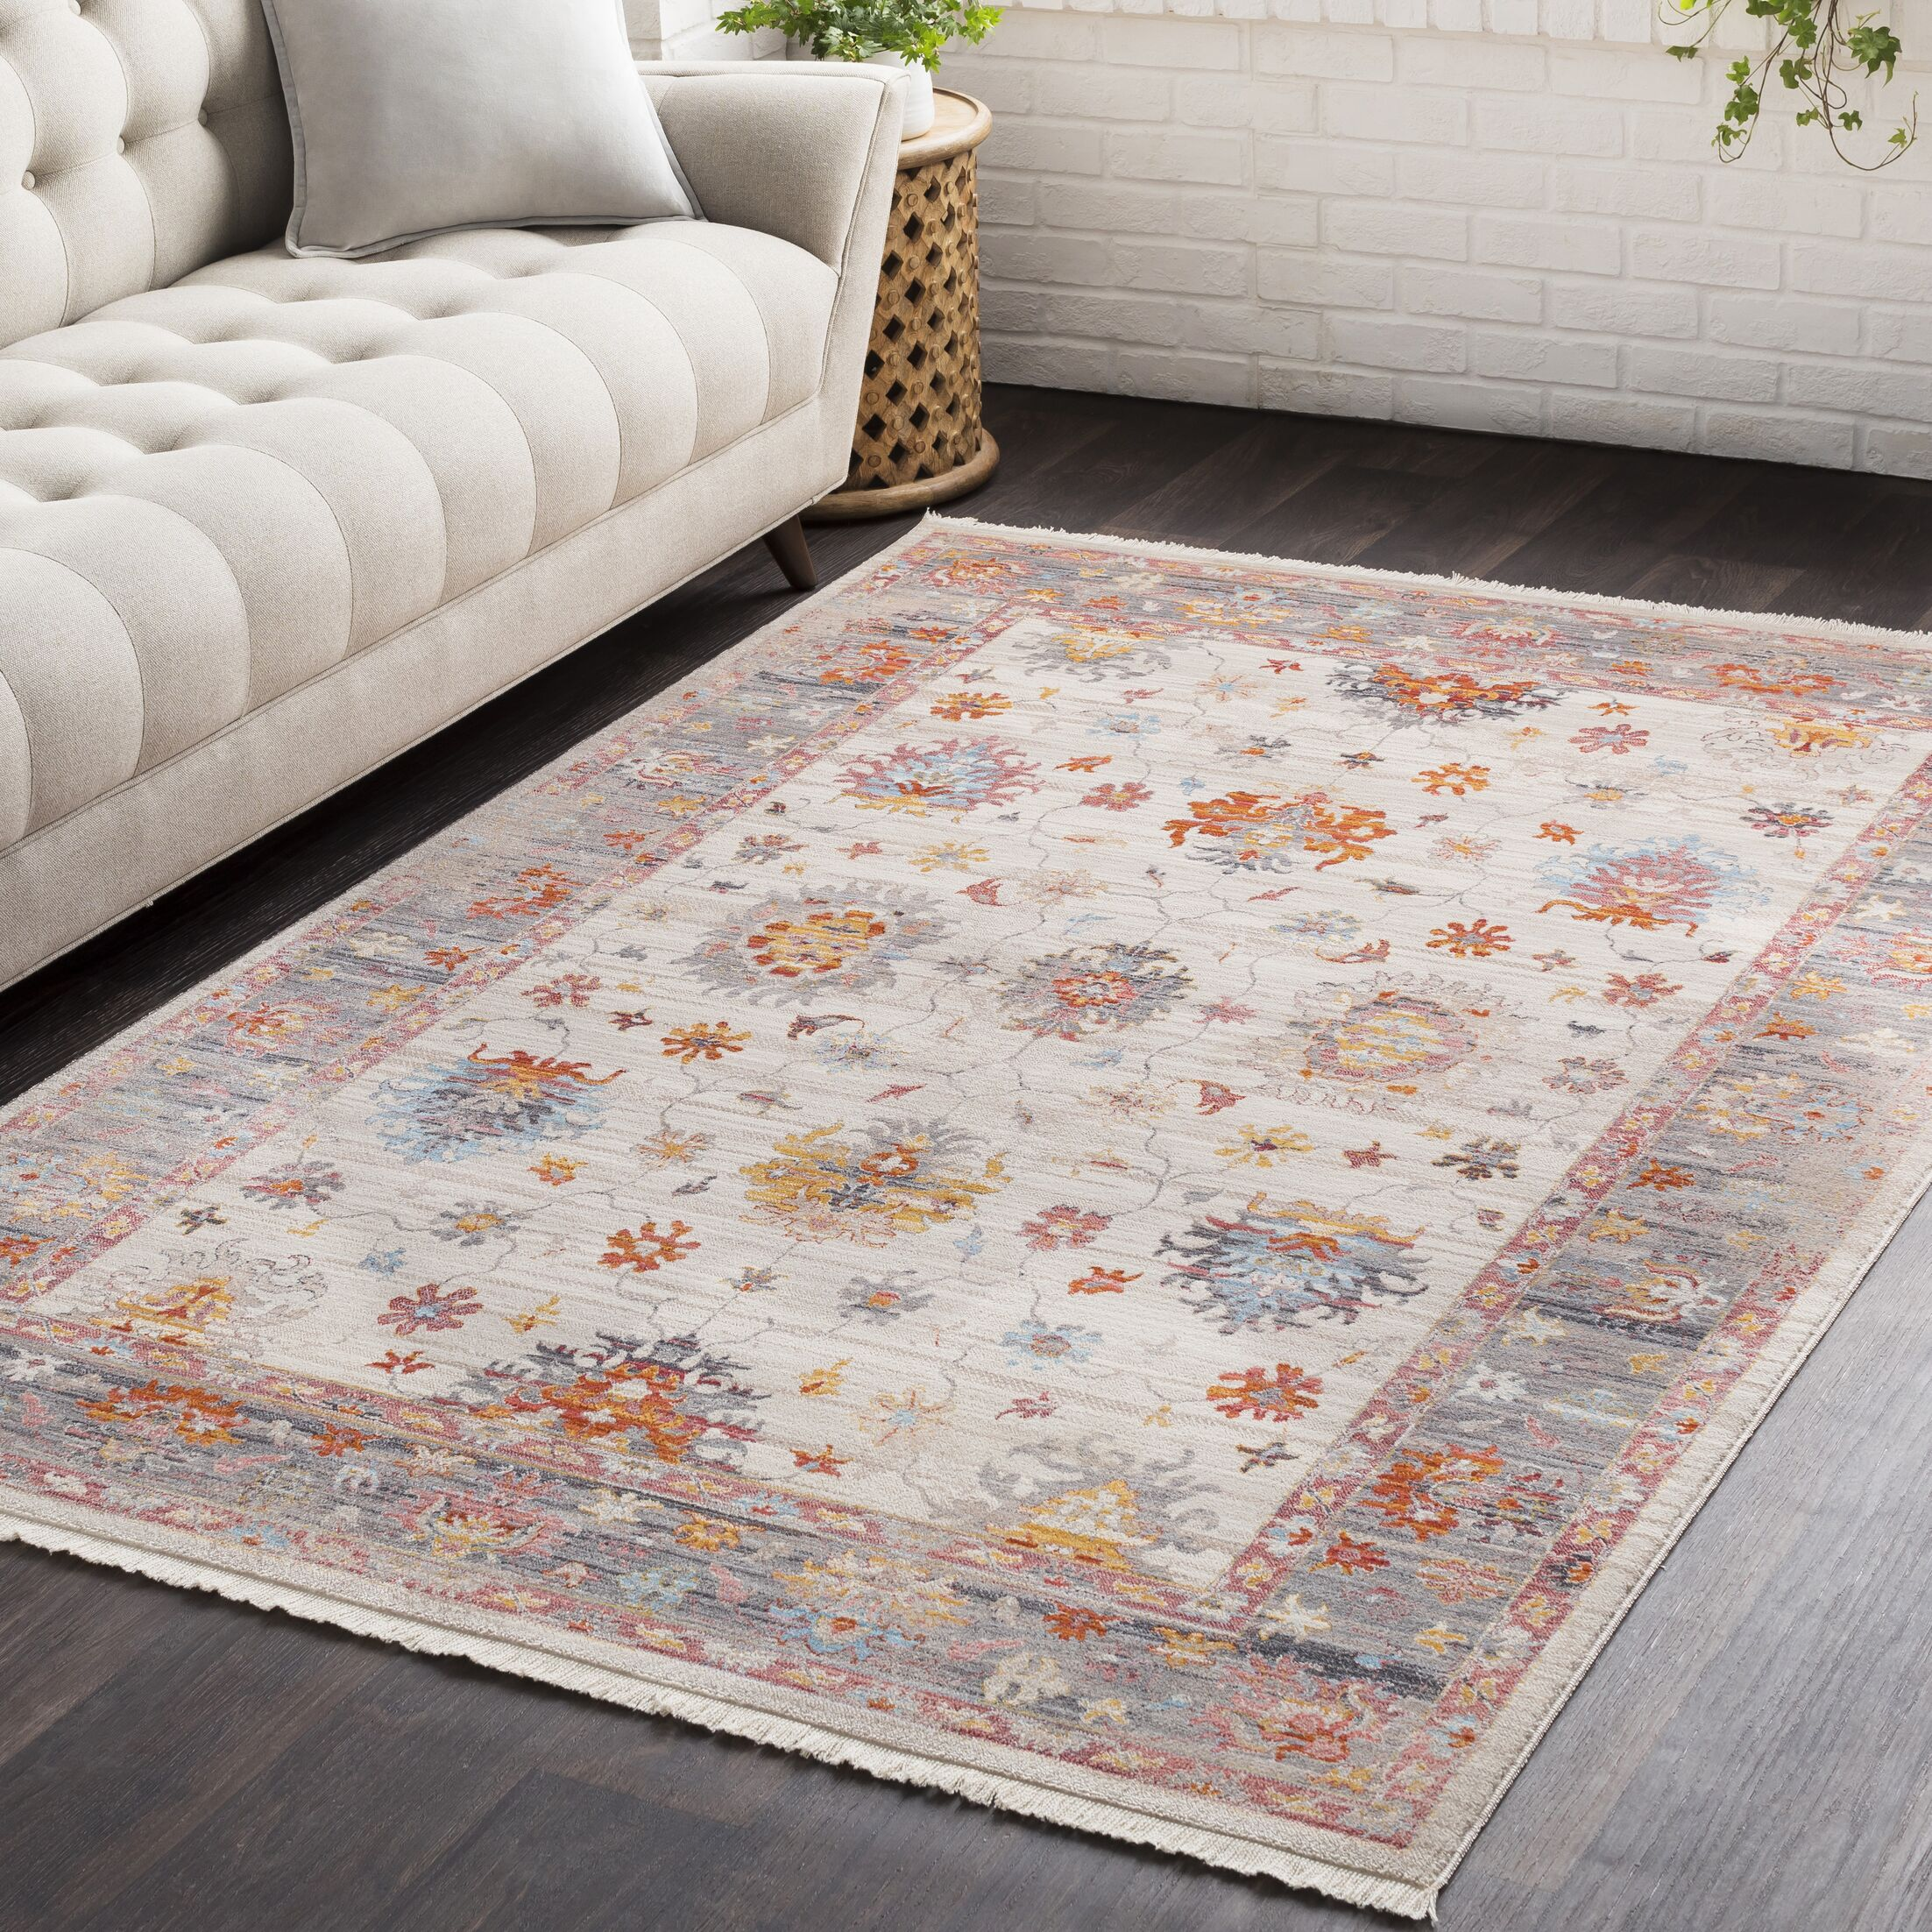 Mendelsohn Vintage Persian Traditional Beige/Red Area Rug Rug Size: Rectangle 9' x 12'10